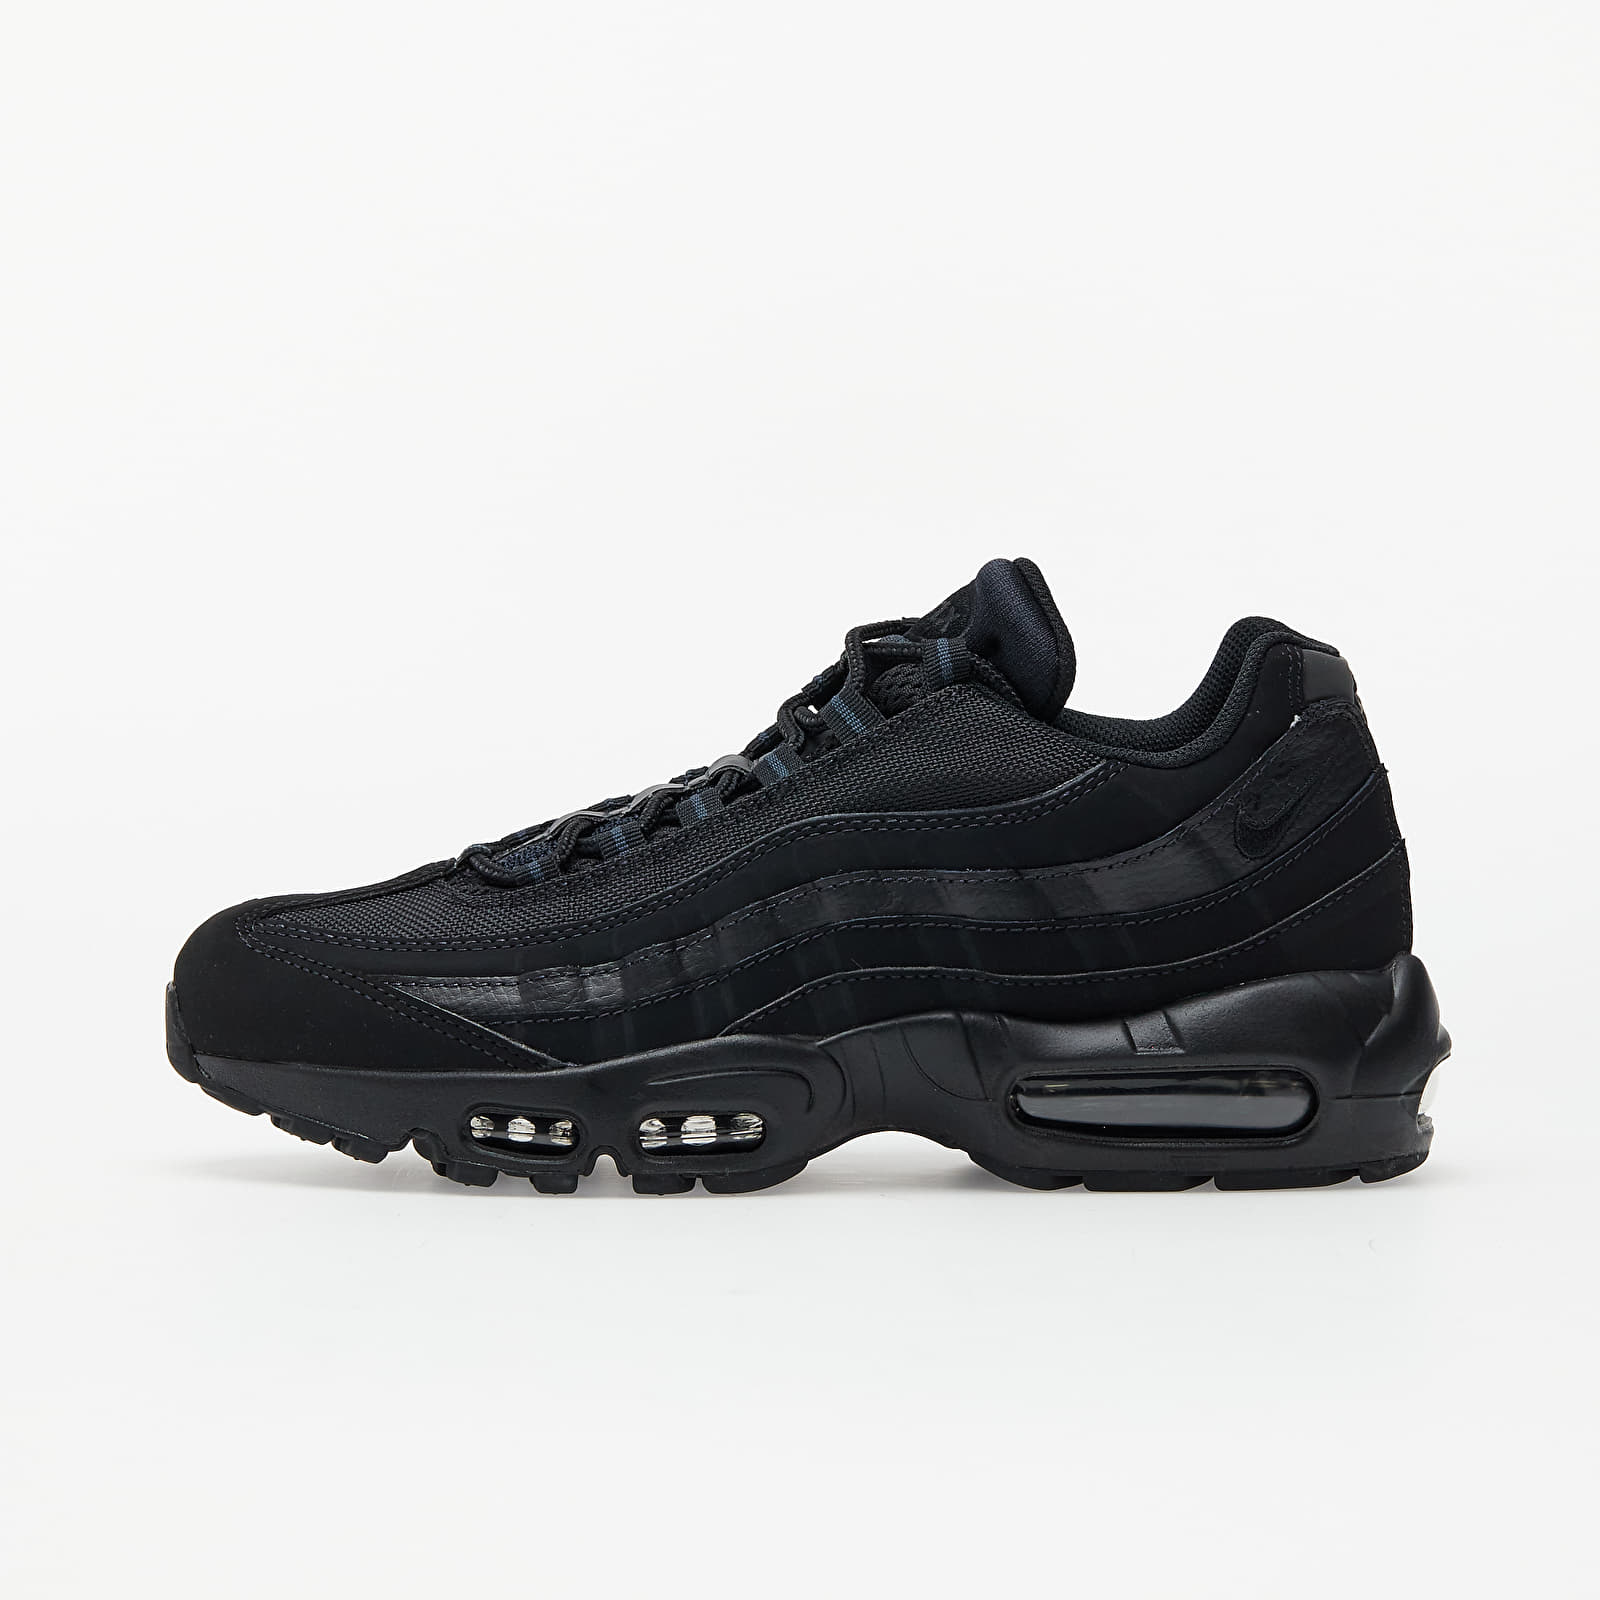 Nike Air Max 95 Black/ Black-Anthracite EUR 41